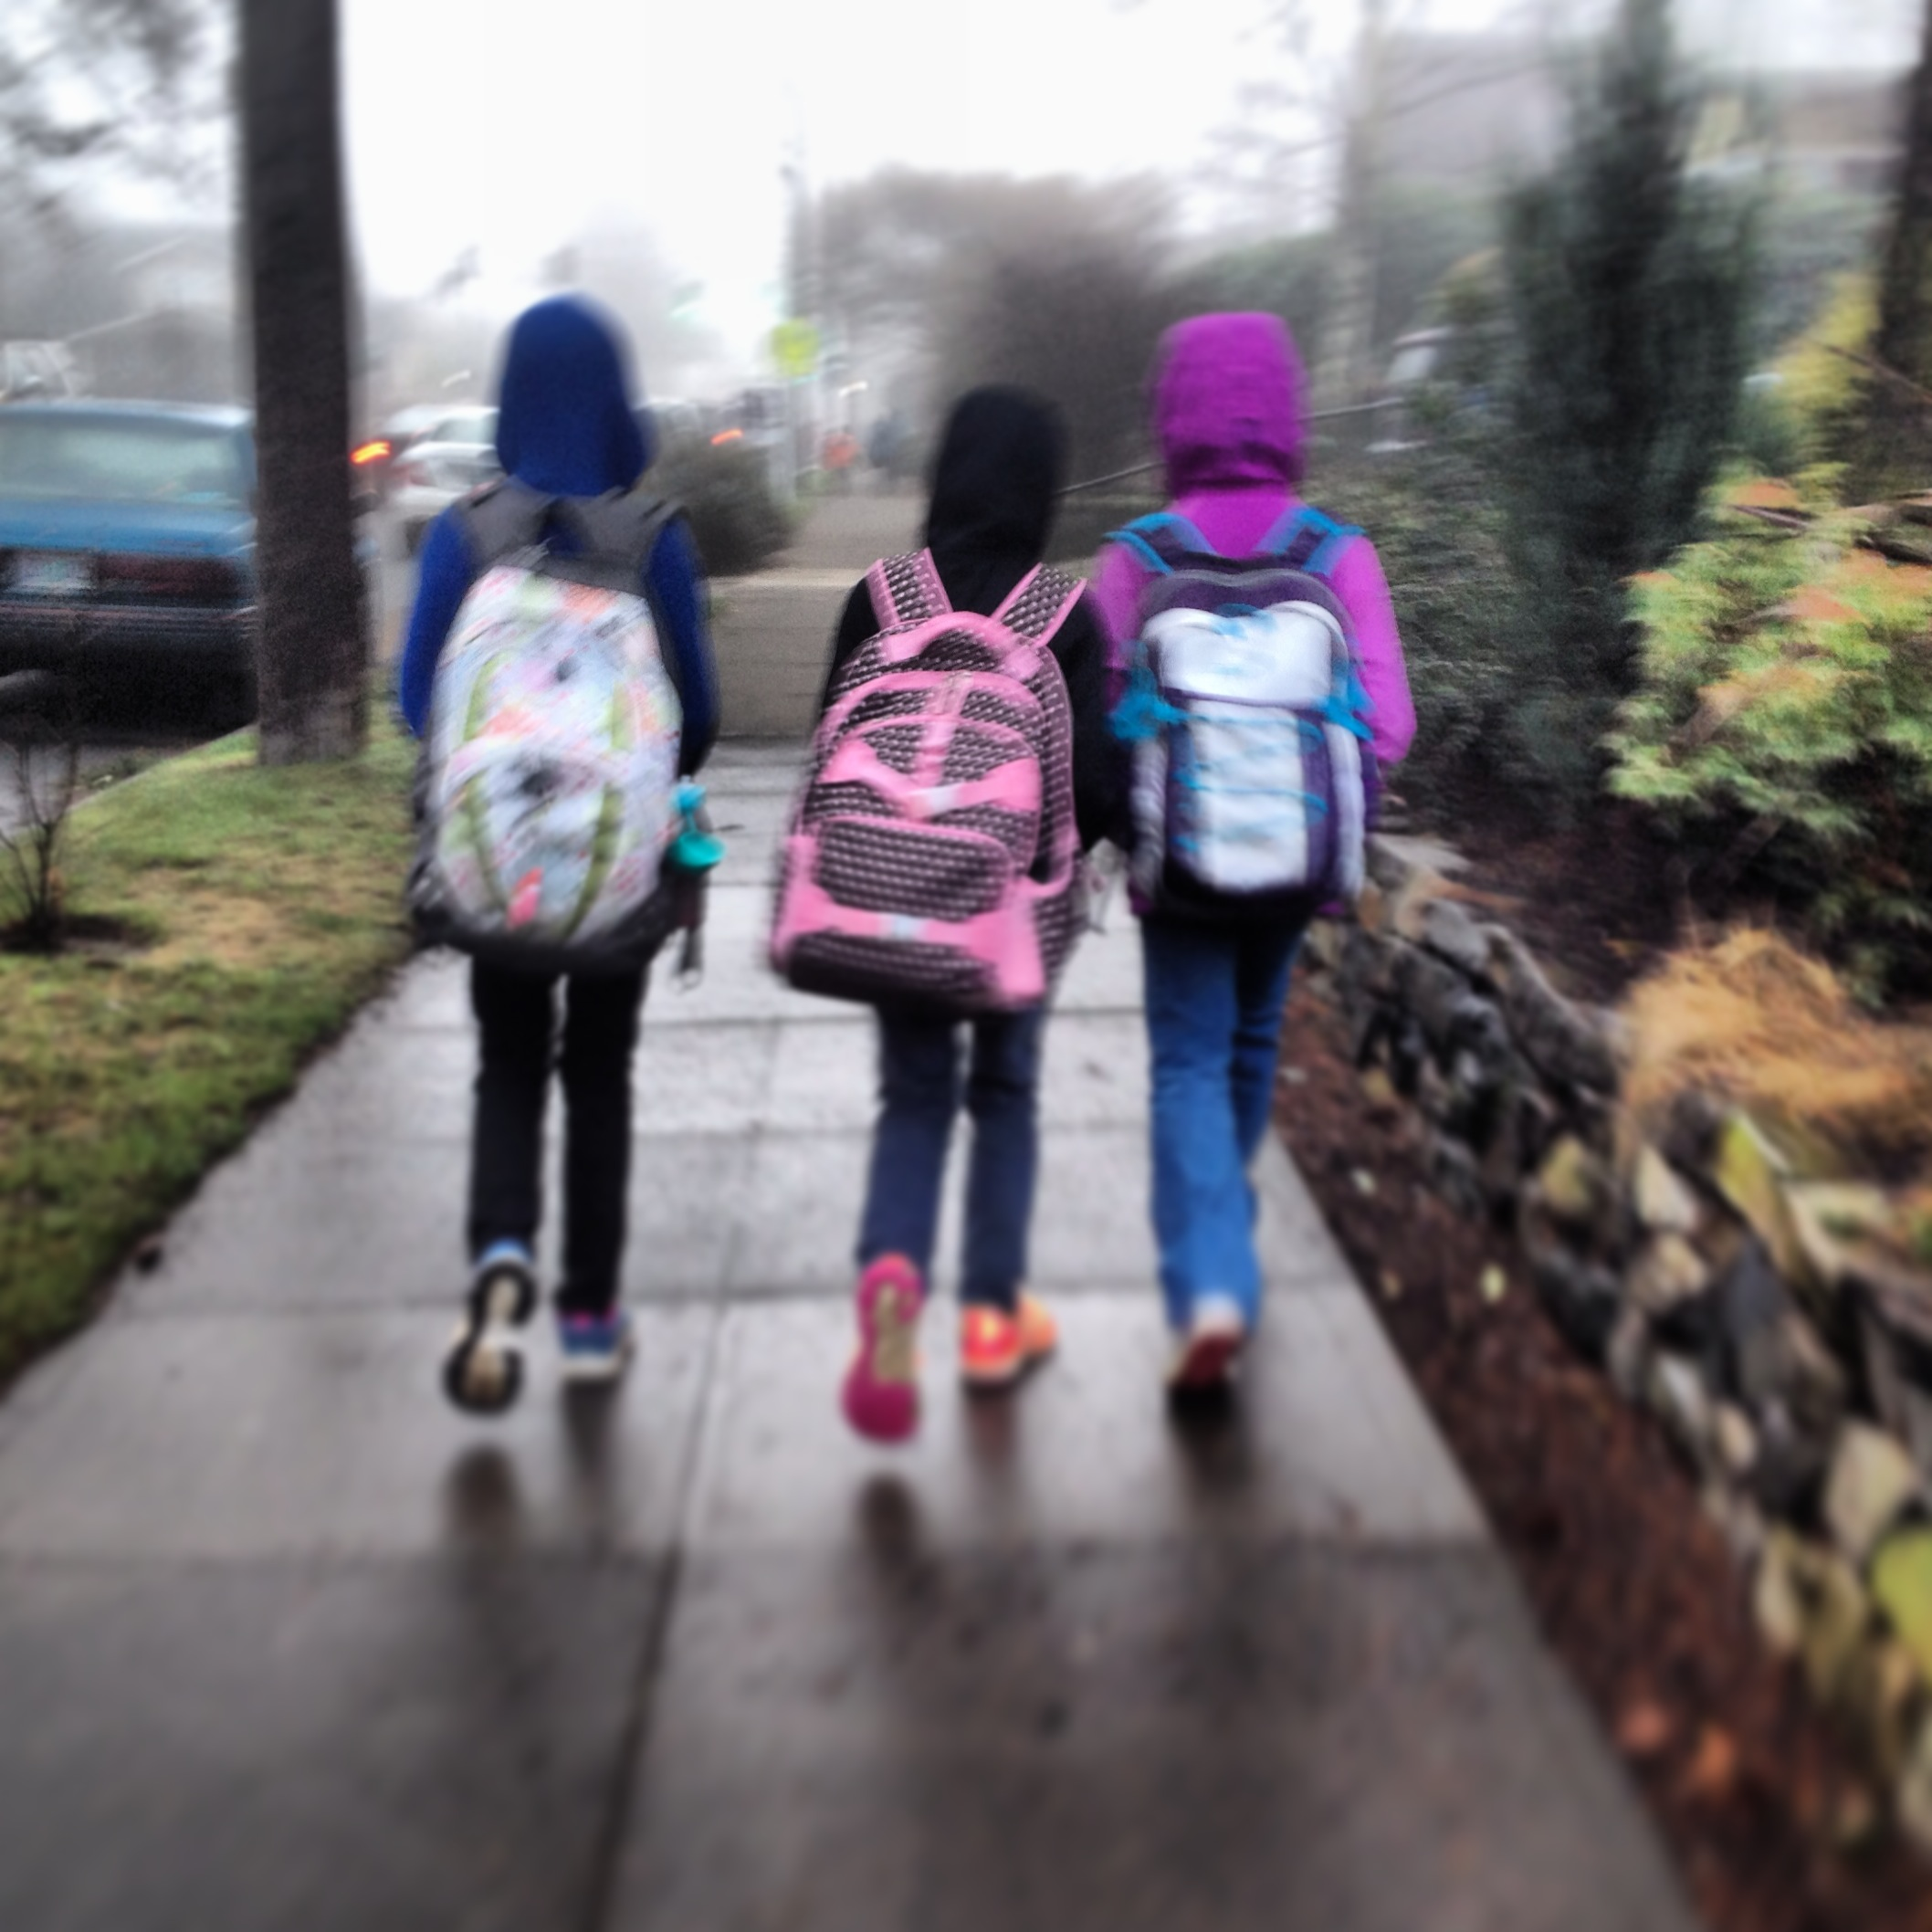 14 01 17 Walking to school - Lindsay Raban.jpg